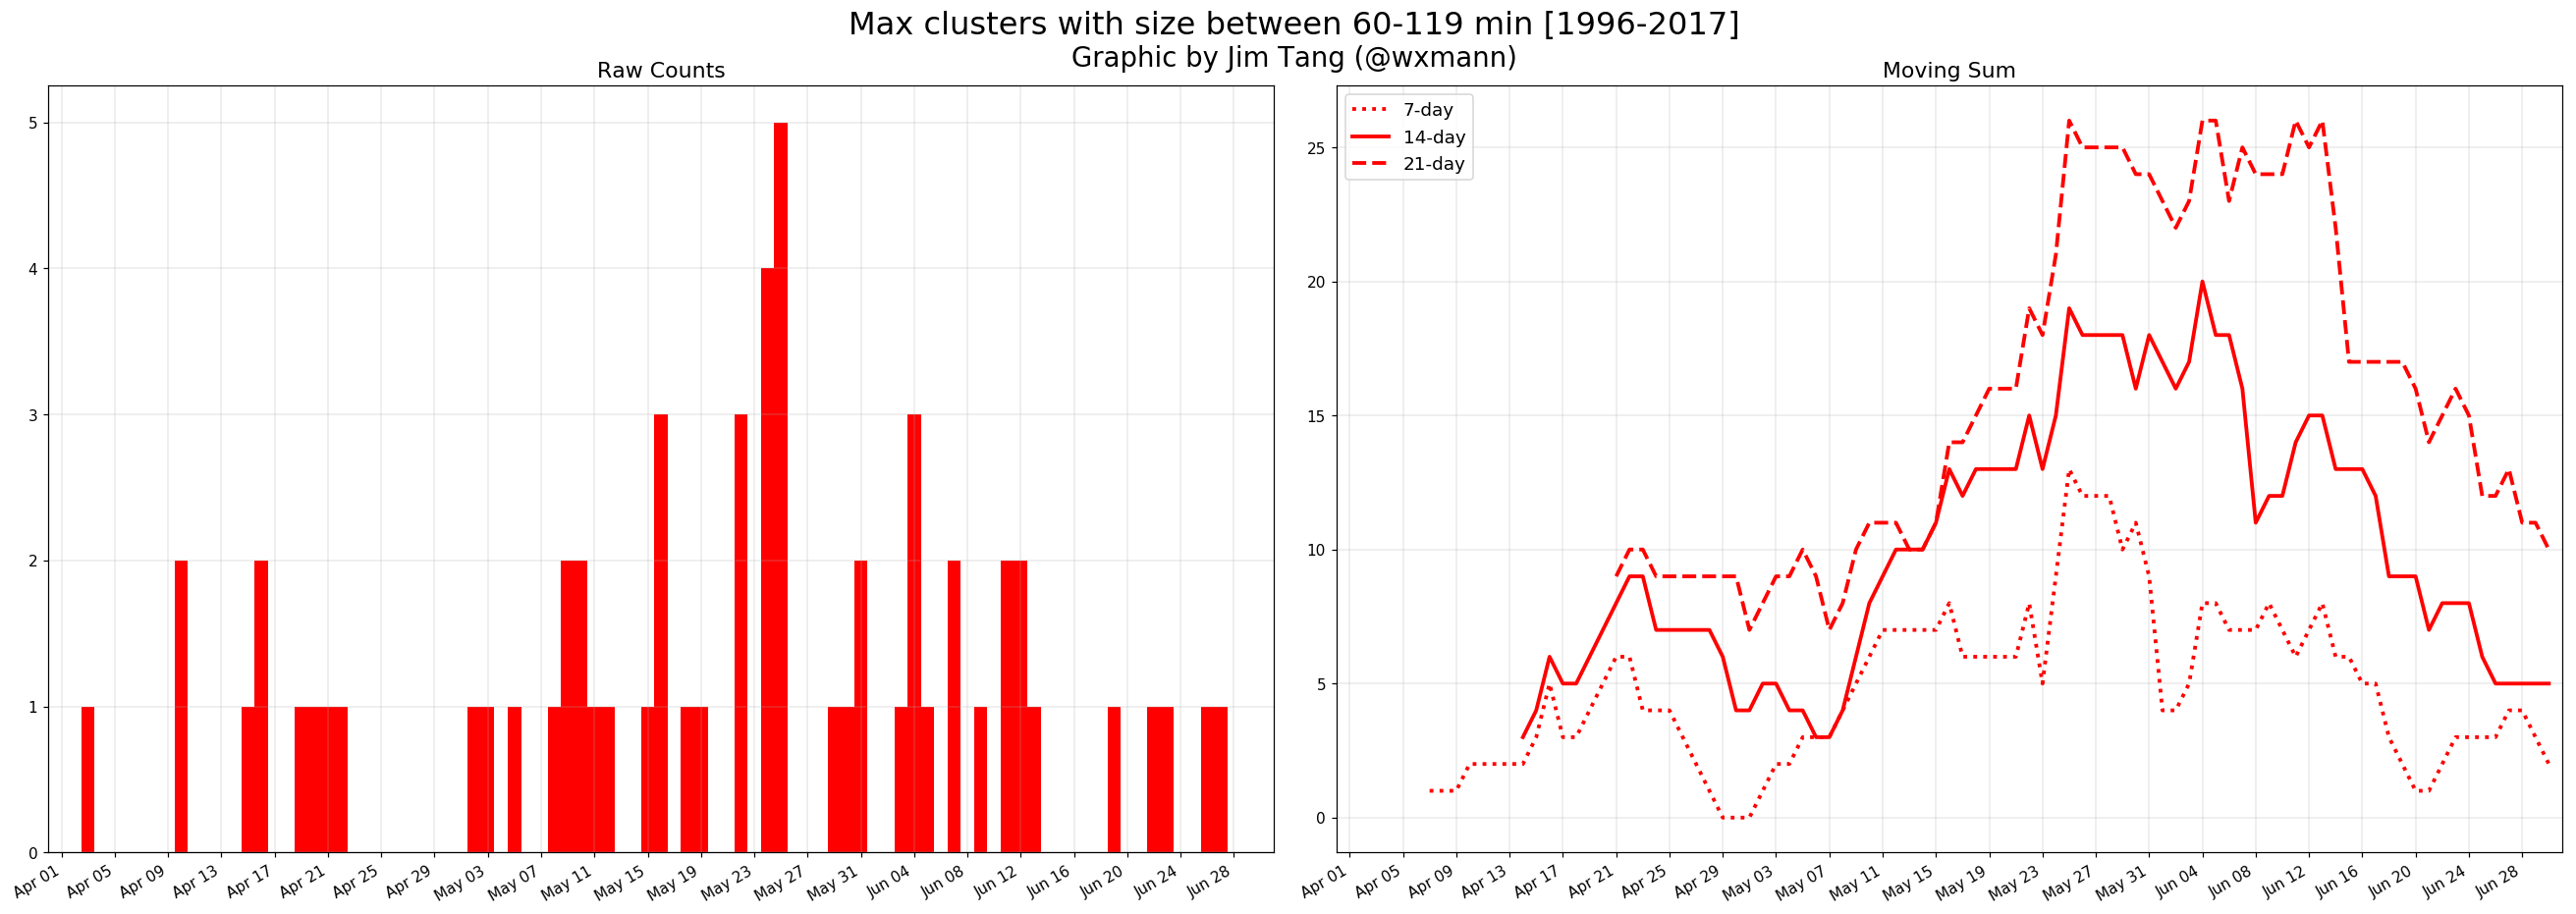 Max clusters with durations of 60-119 minutes. Notice the rolling peak in late May. Graphic by Jim Tang.